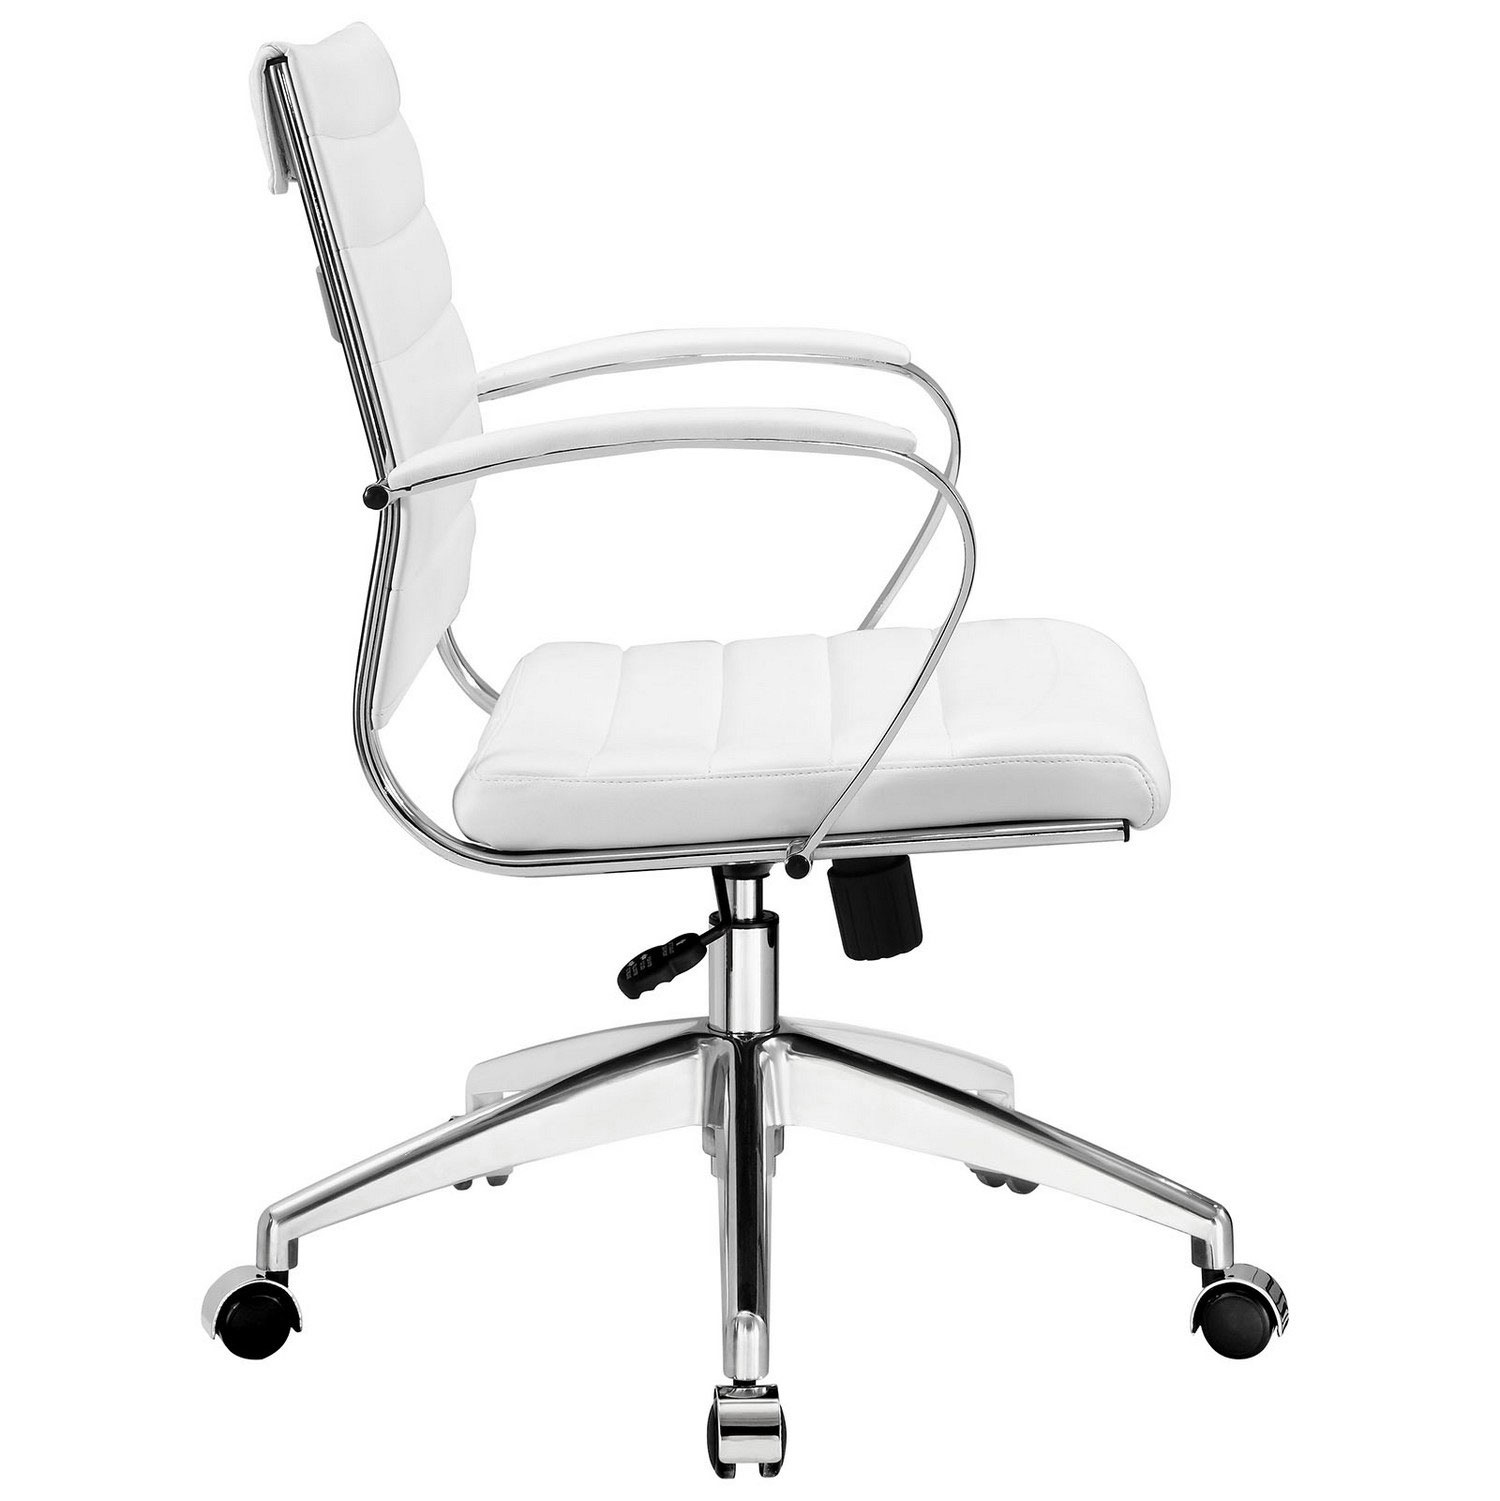 Modway Jive Mid Back Office Chair - White